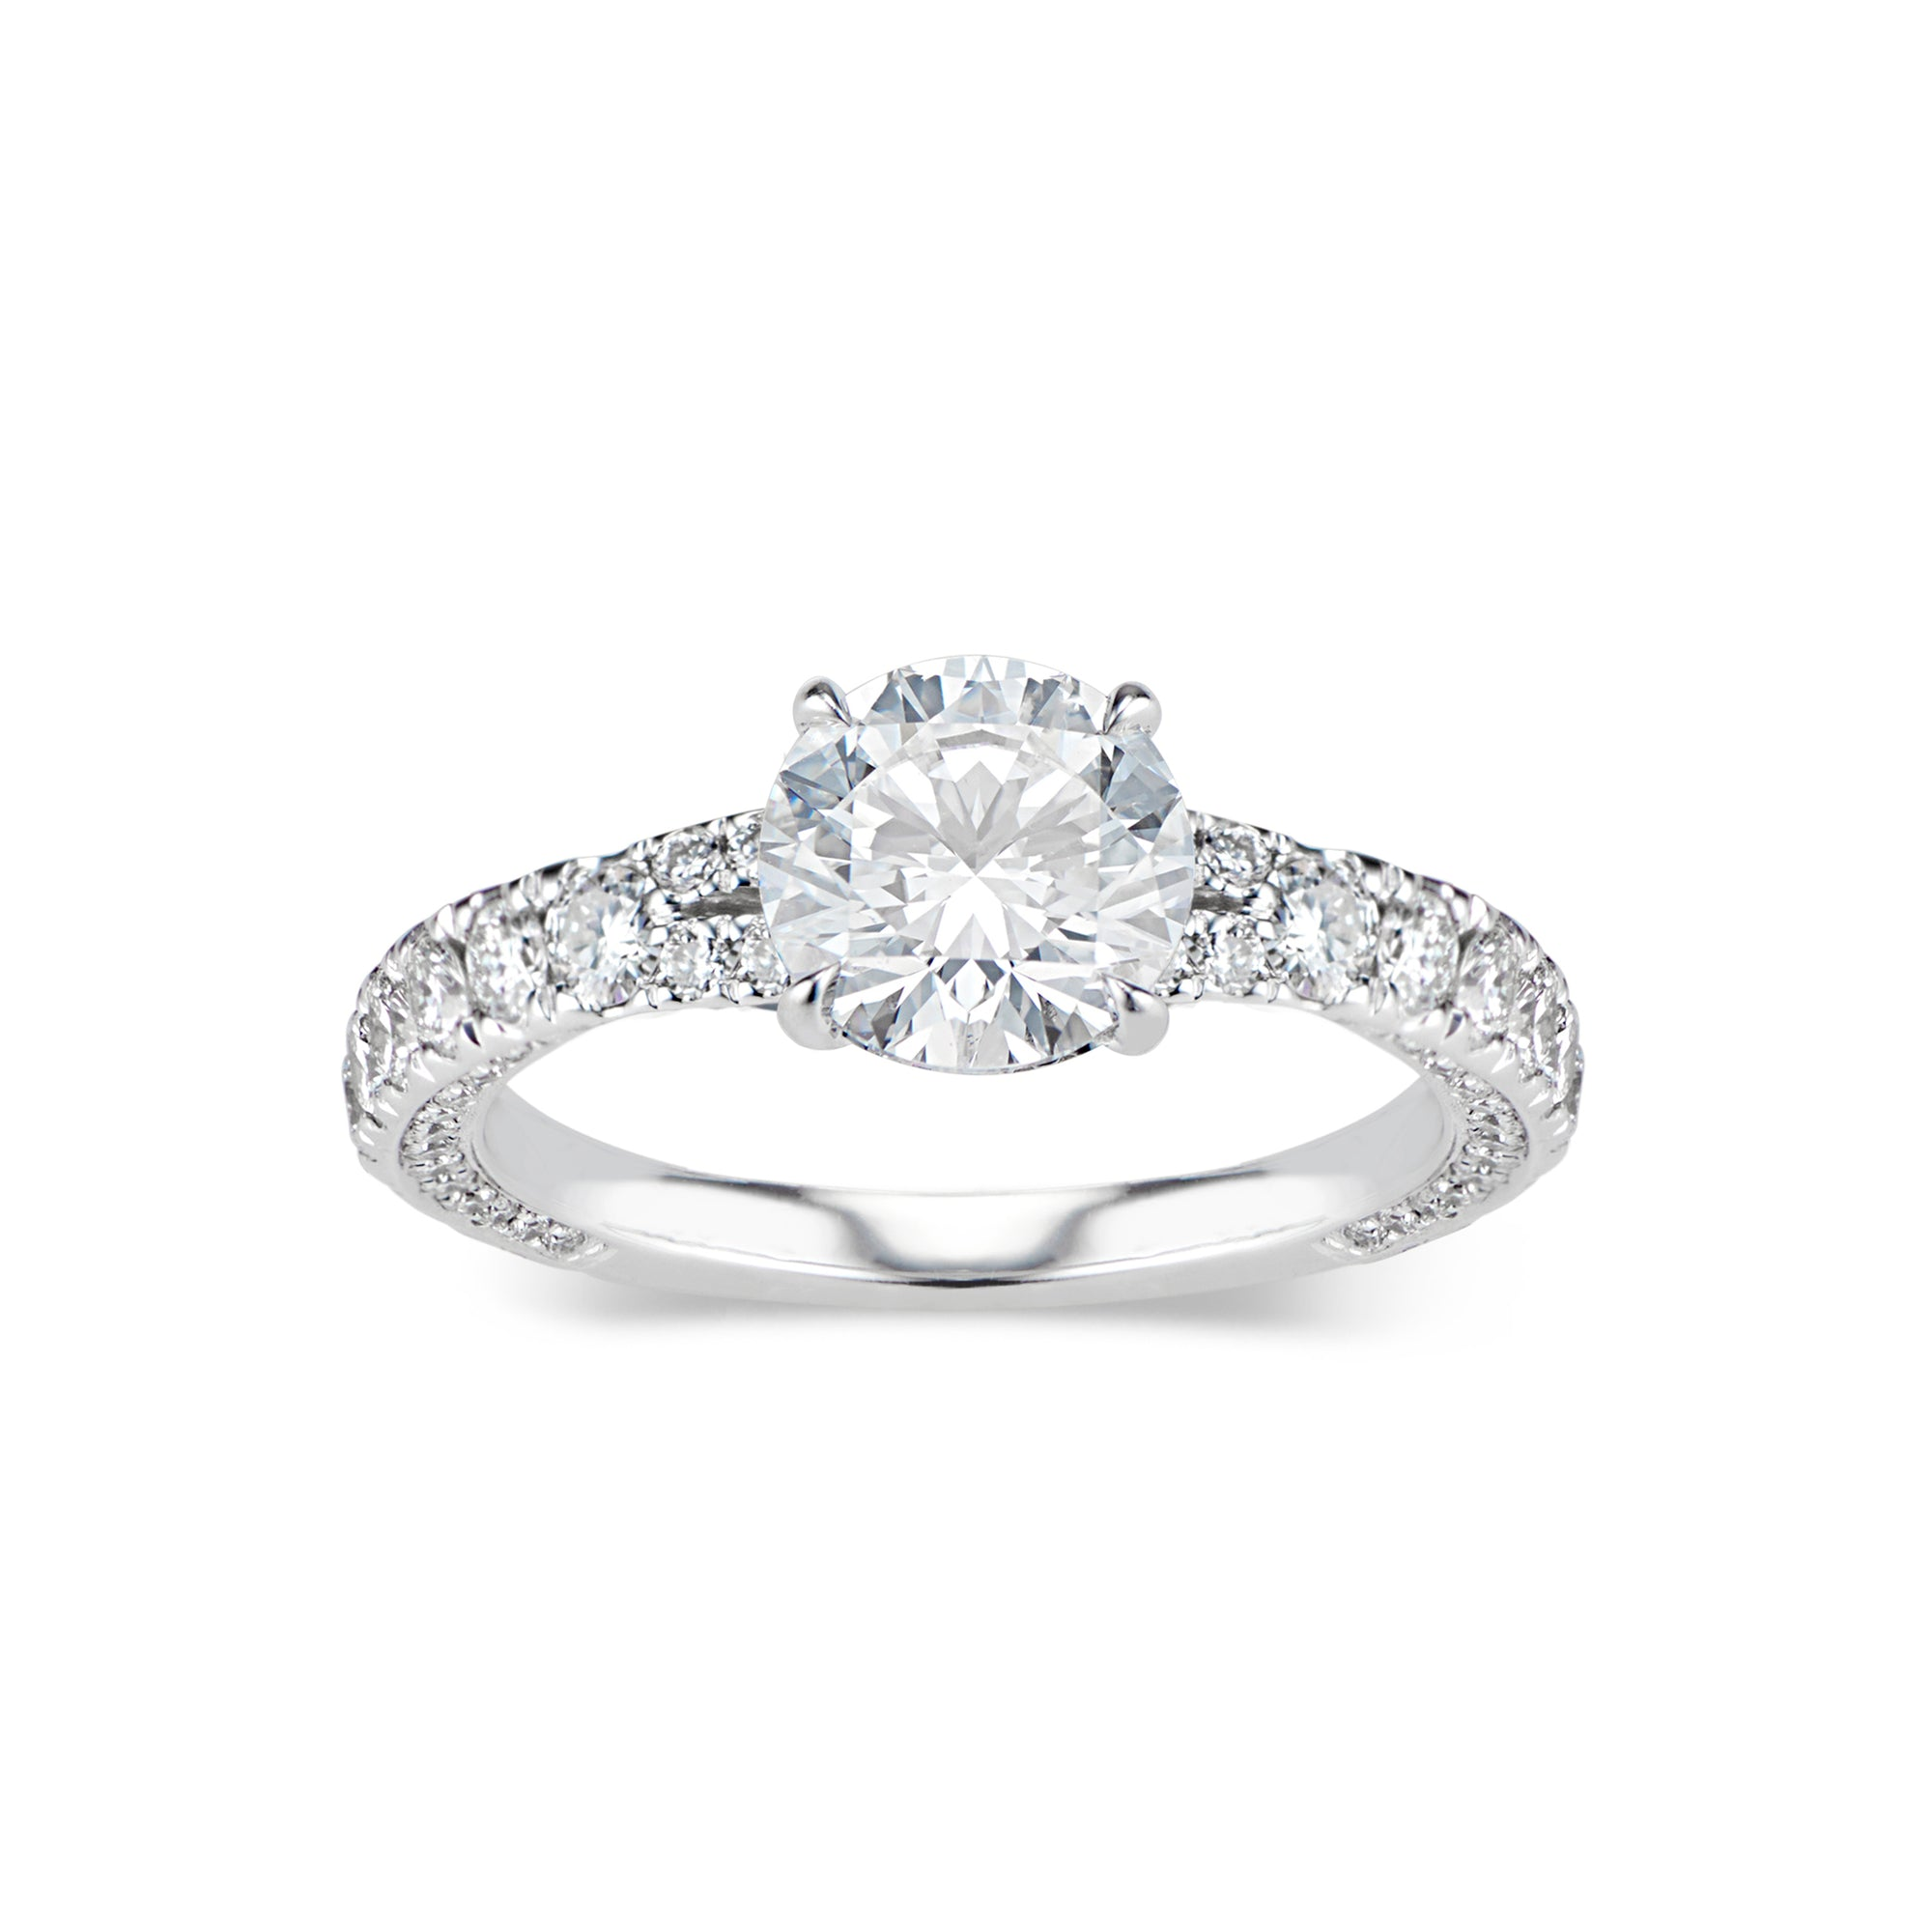 Round Diamond Engagement Ring with Bypass Shank